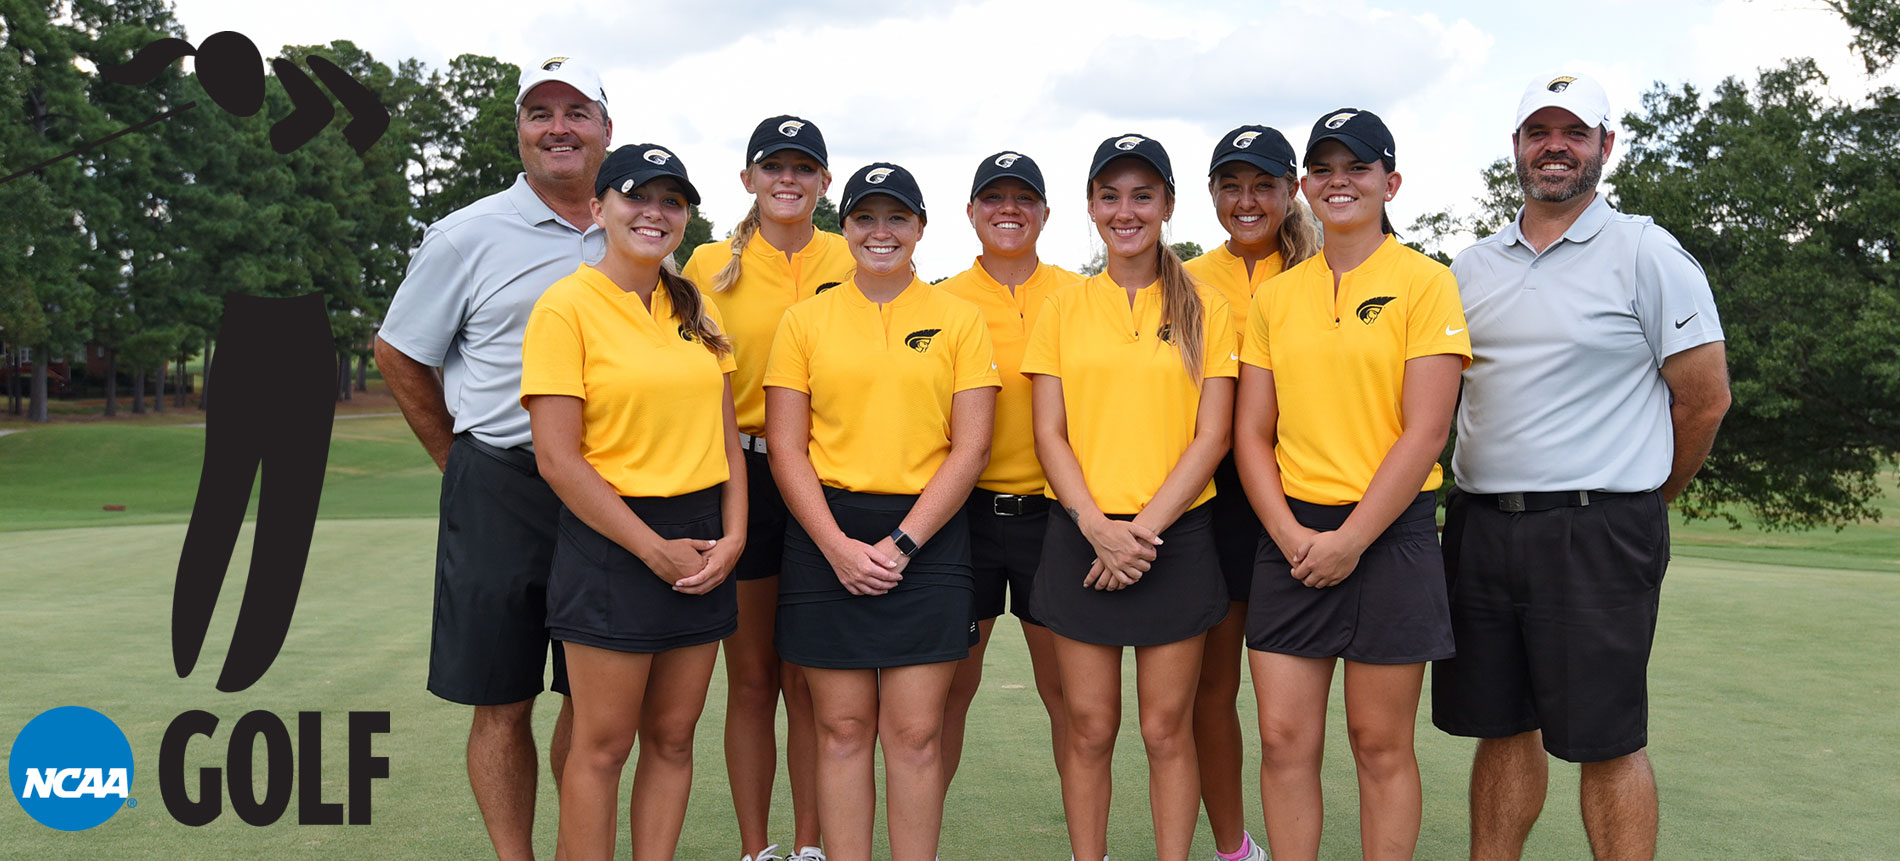 Women's Golf Slips to 12th in the South Region in NCAA's Final Weekly Rankings